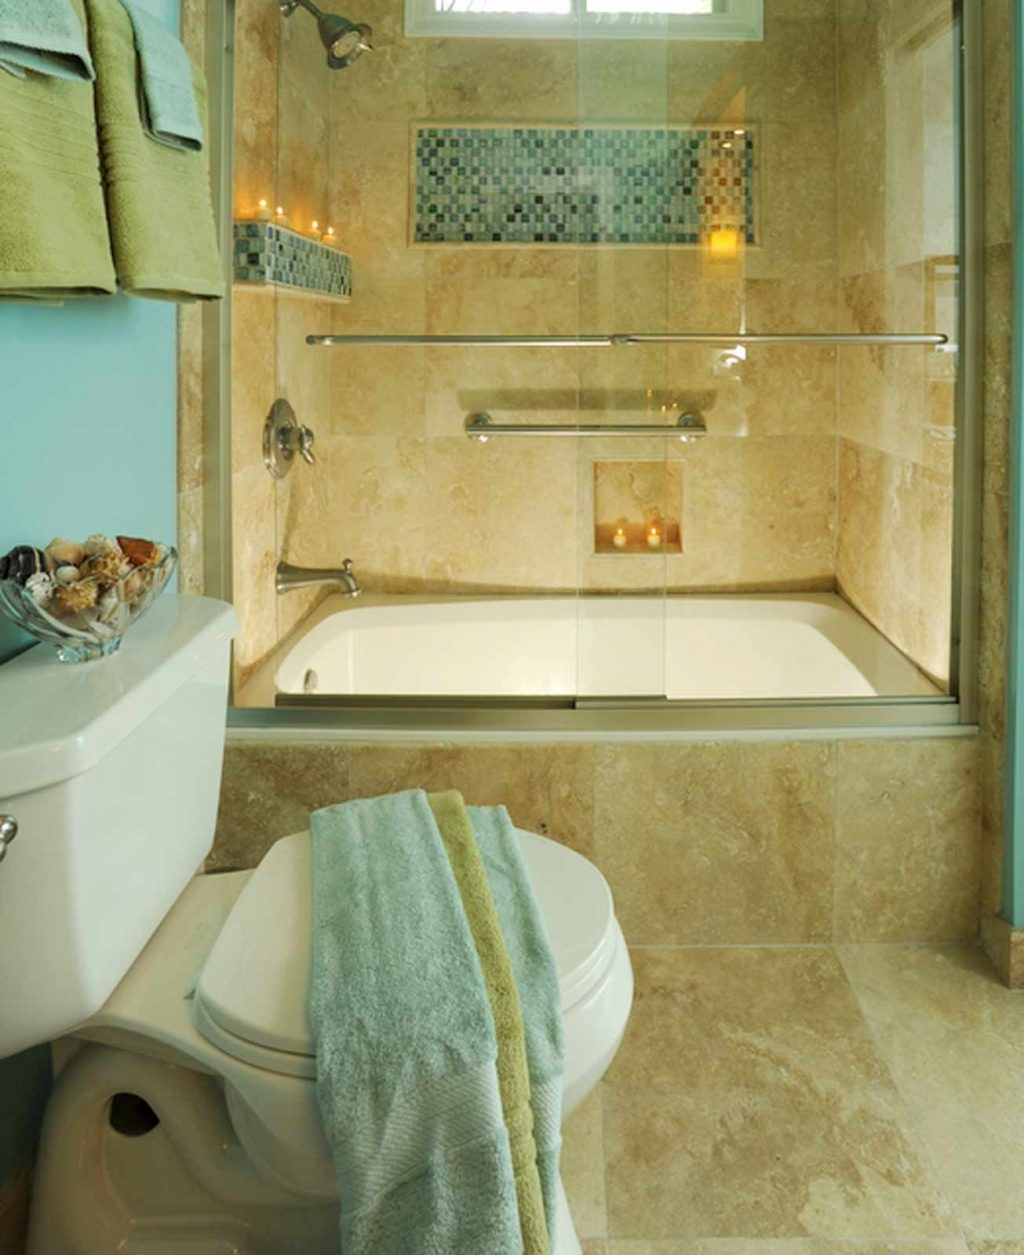 A Travertine Tile Shower With Glass Mosaic Accent Is The Highlight